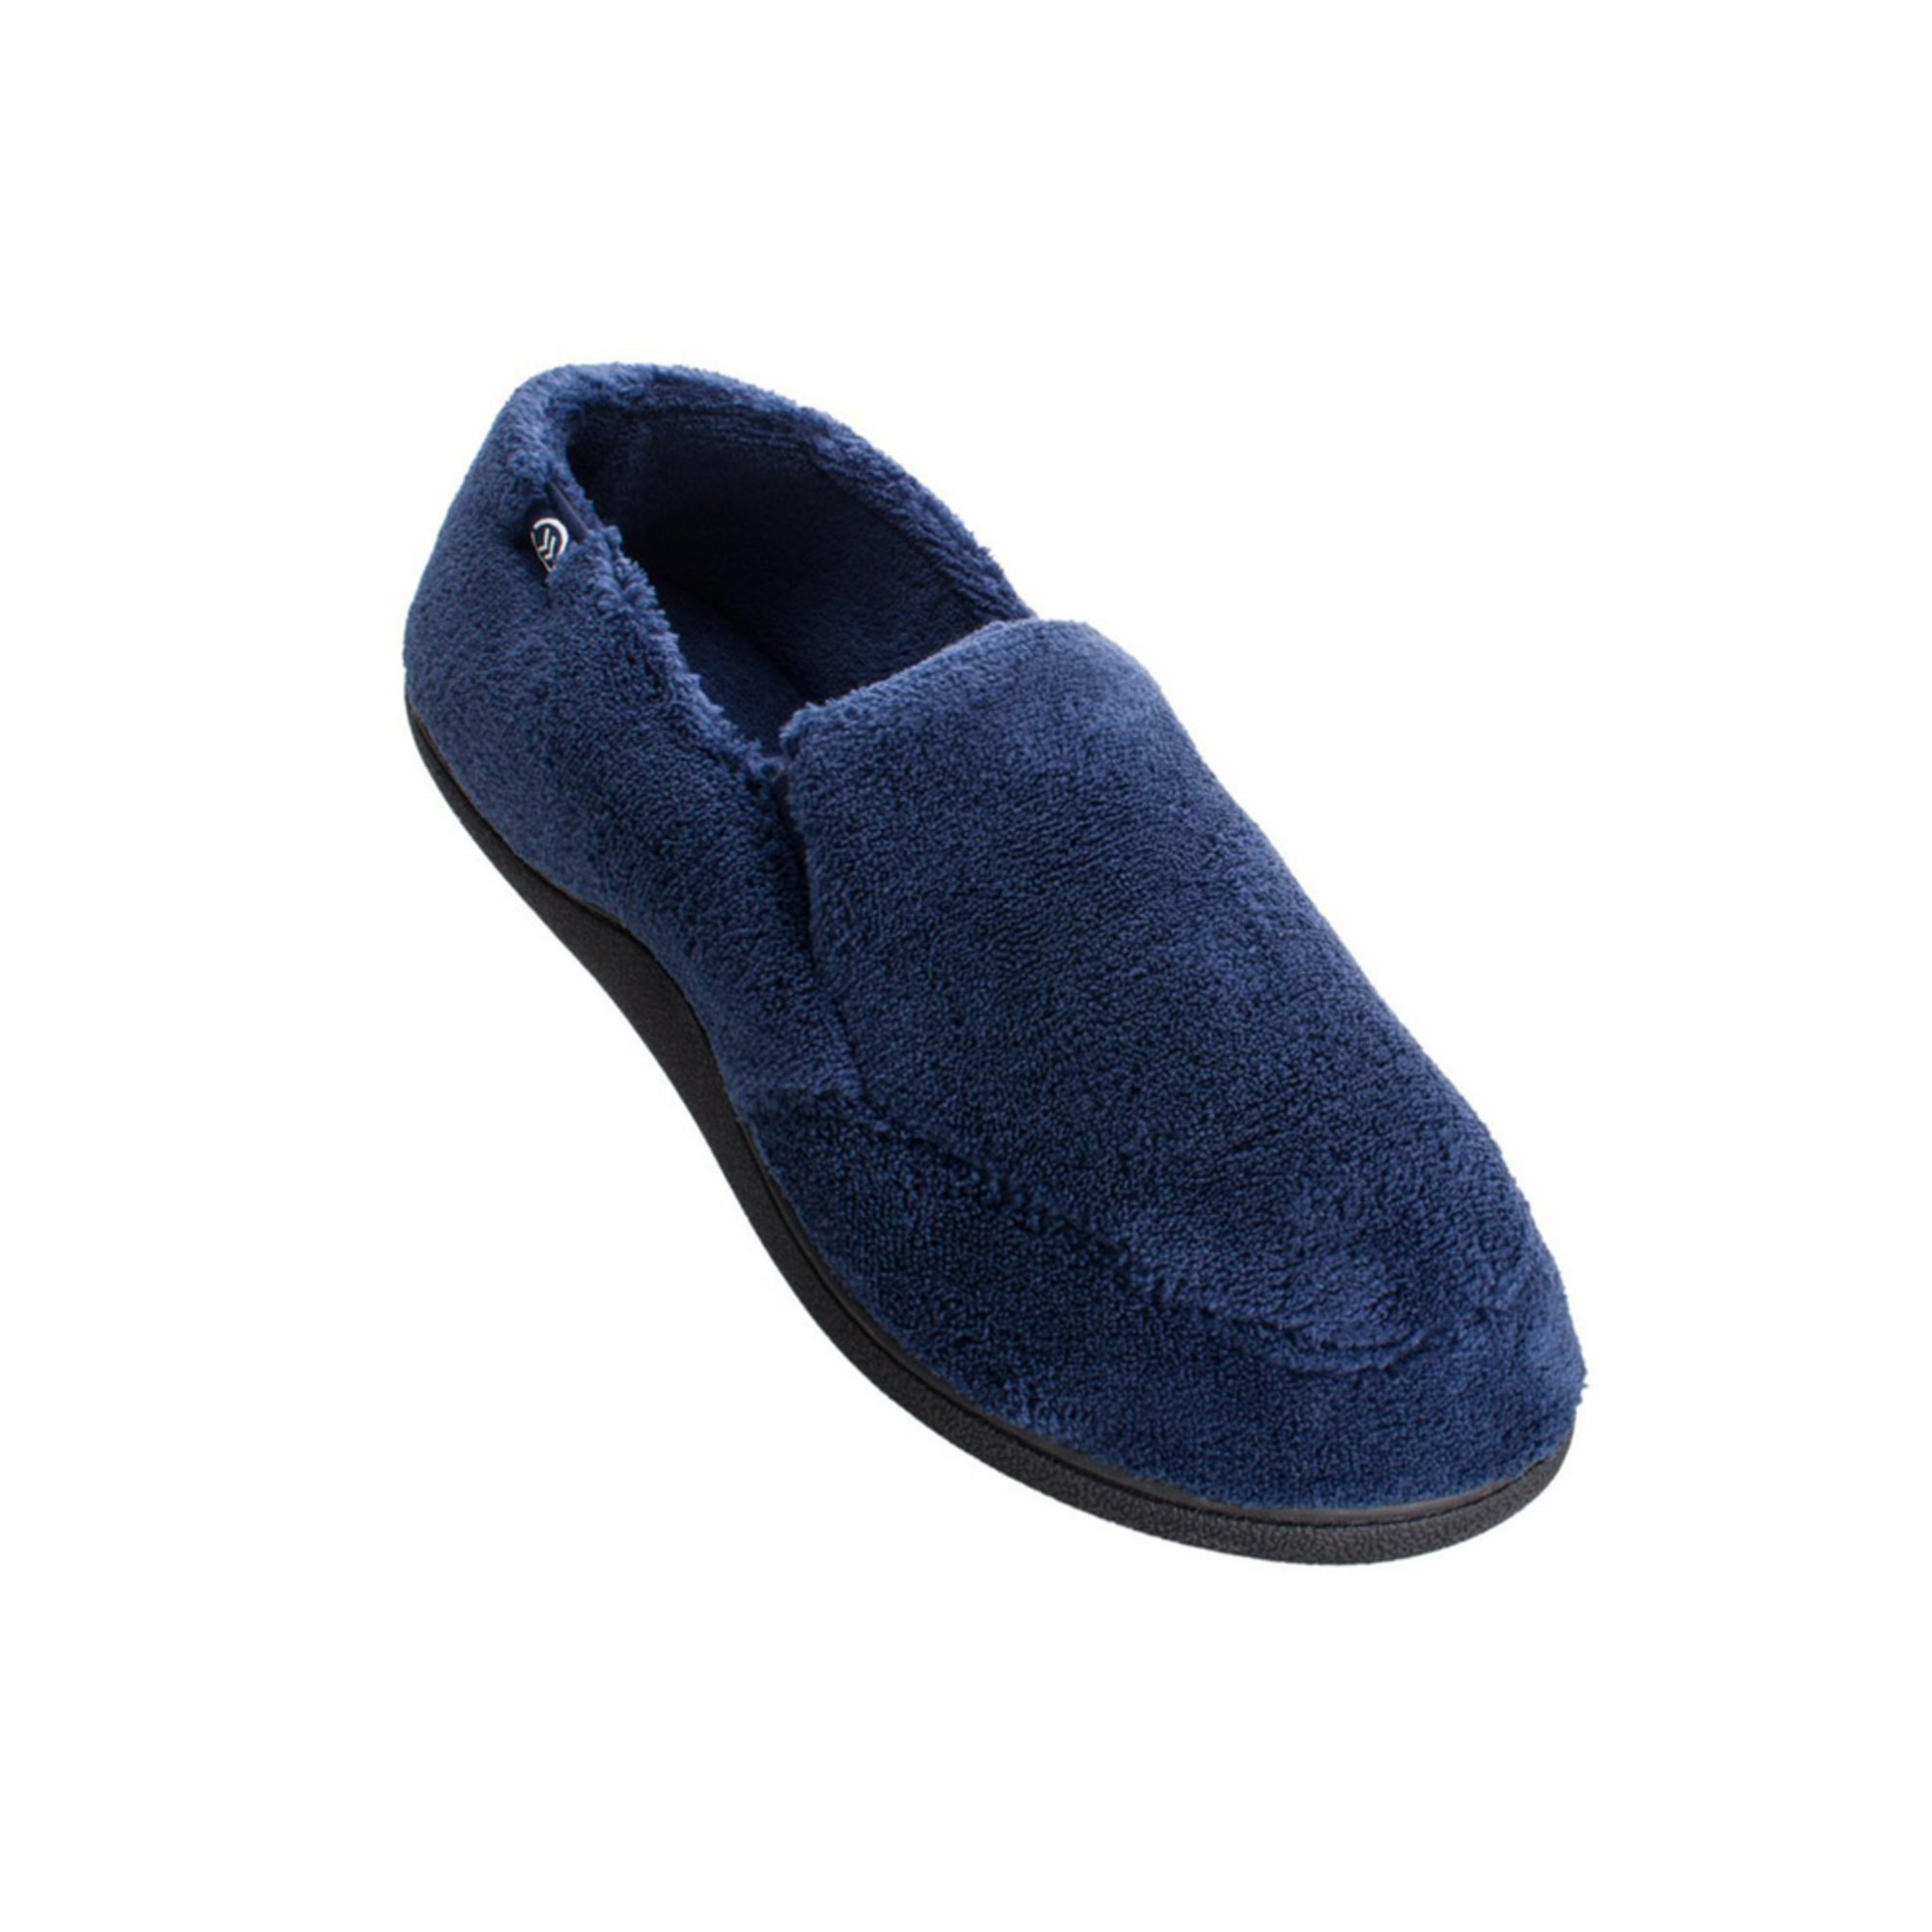 totes isotoner men s microterry slip on slipper men s mens coolers cushioned sole slip on mule thermal slippers